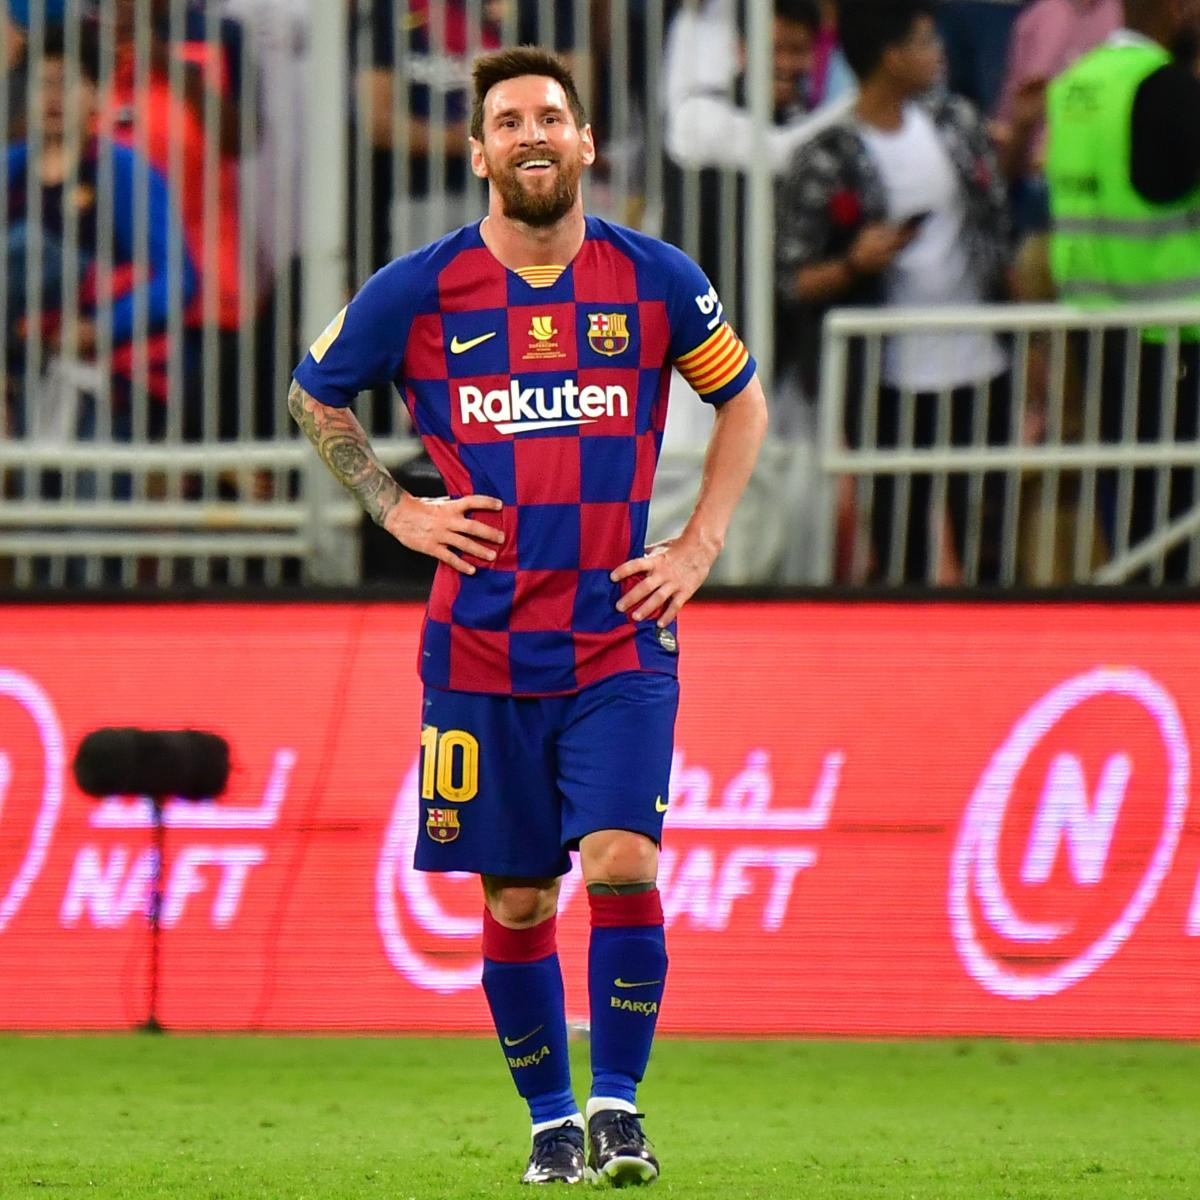 Lionel Messi Thinks About Scoring Less And Less Not Obsessed With Goals Bleacher Report Latest News Videos And Highlights